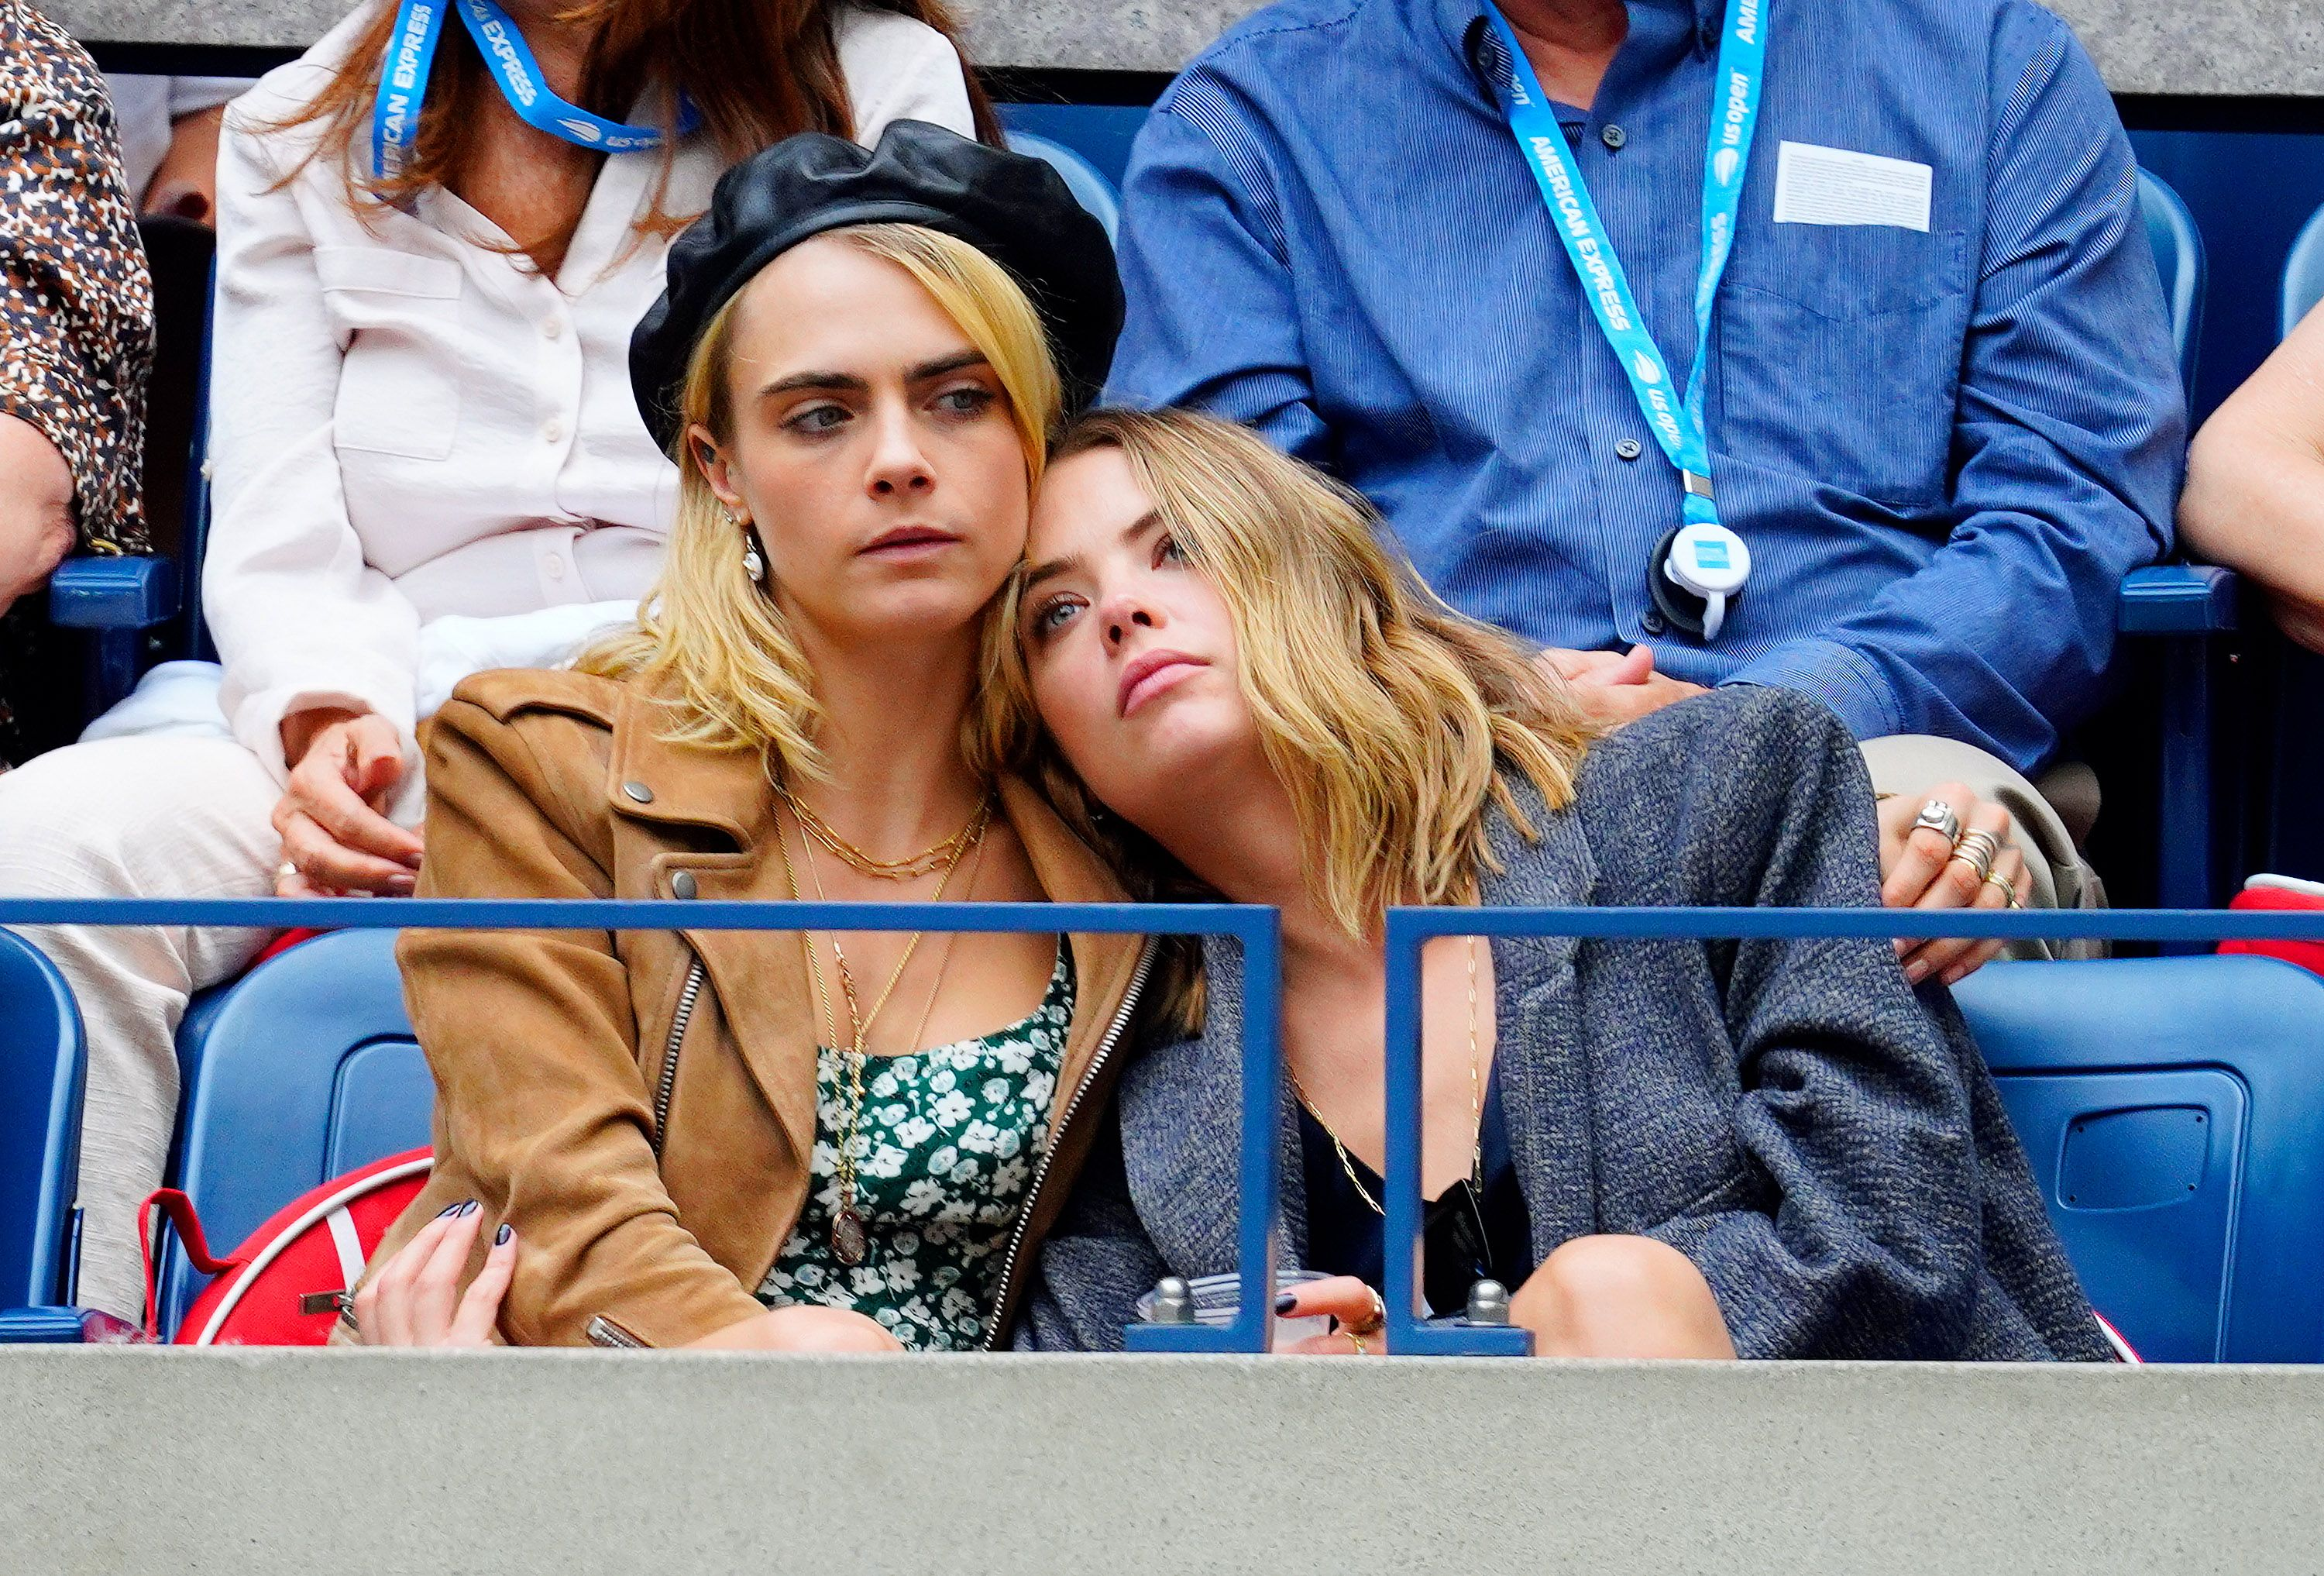 Cara Delevingne and Ashley Benson attend the 2019 US Open Women's final / Getty Images